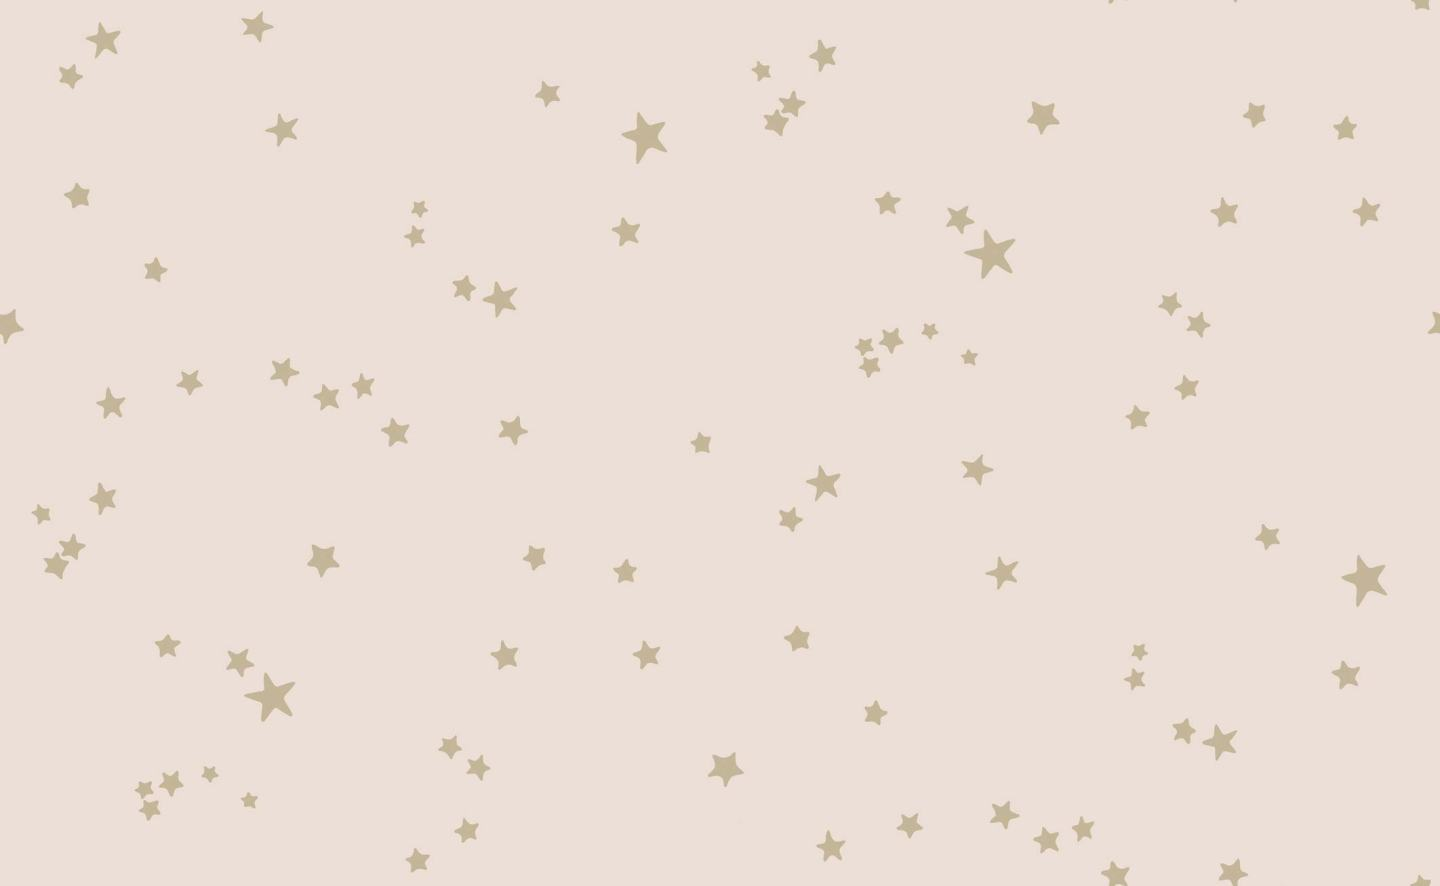 cole-son-pink-whimsical-stars-cropped